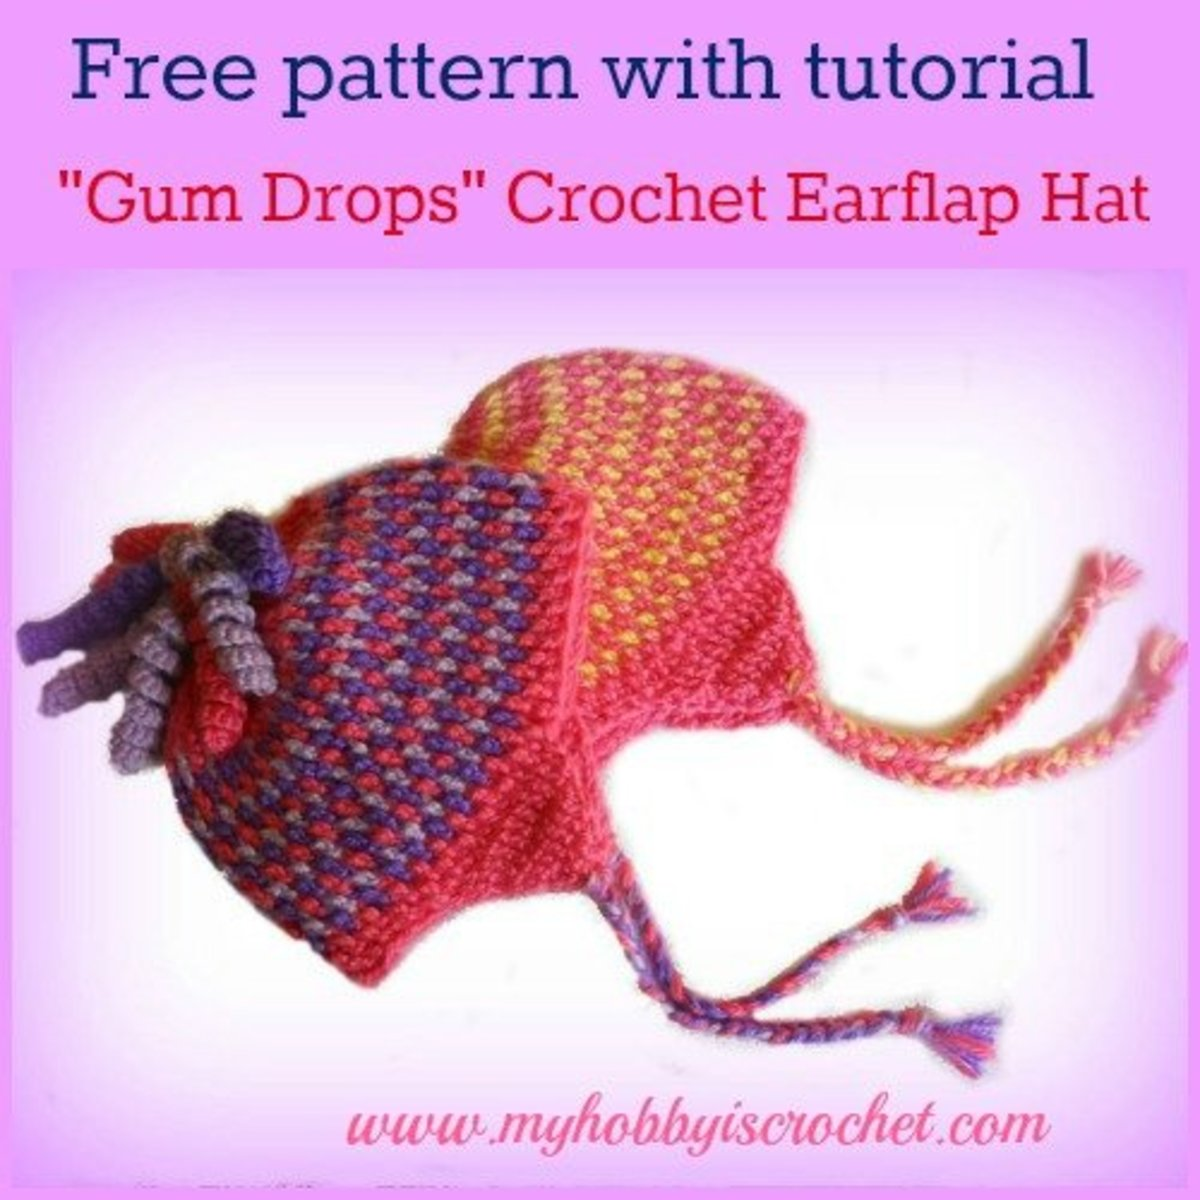 Crochet Earflap Hat Gum Drop